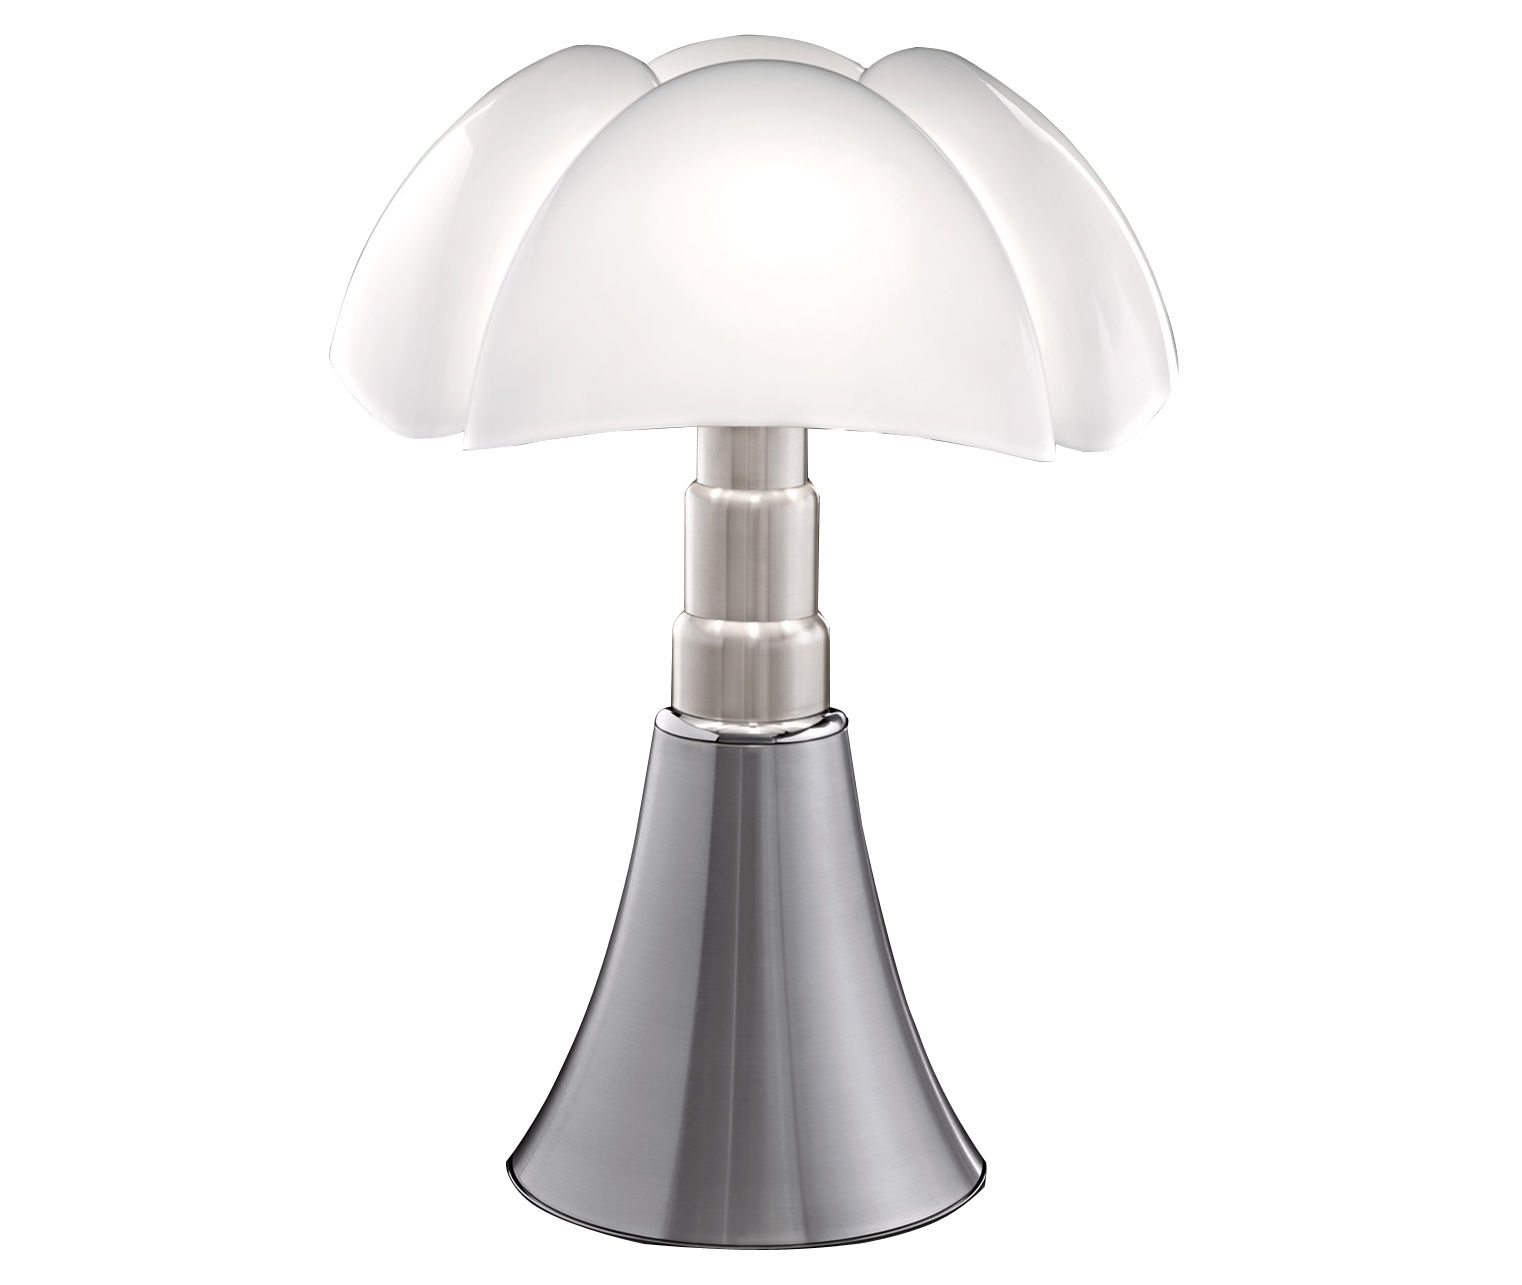 Lighting - Table Lamps - Pipistrello Table lamp - H 66 to 86 cm by Martinelli Luce - Satin aluminium - Galvanized steel, Lacquered aluminium, Opal methacrylate